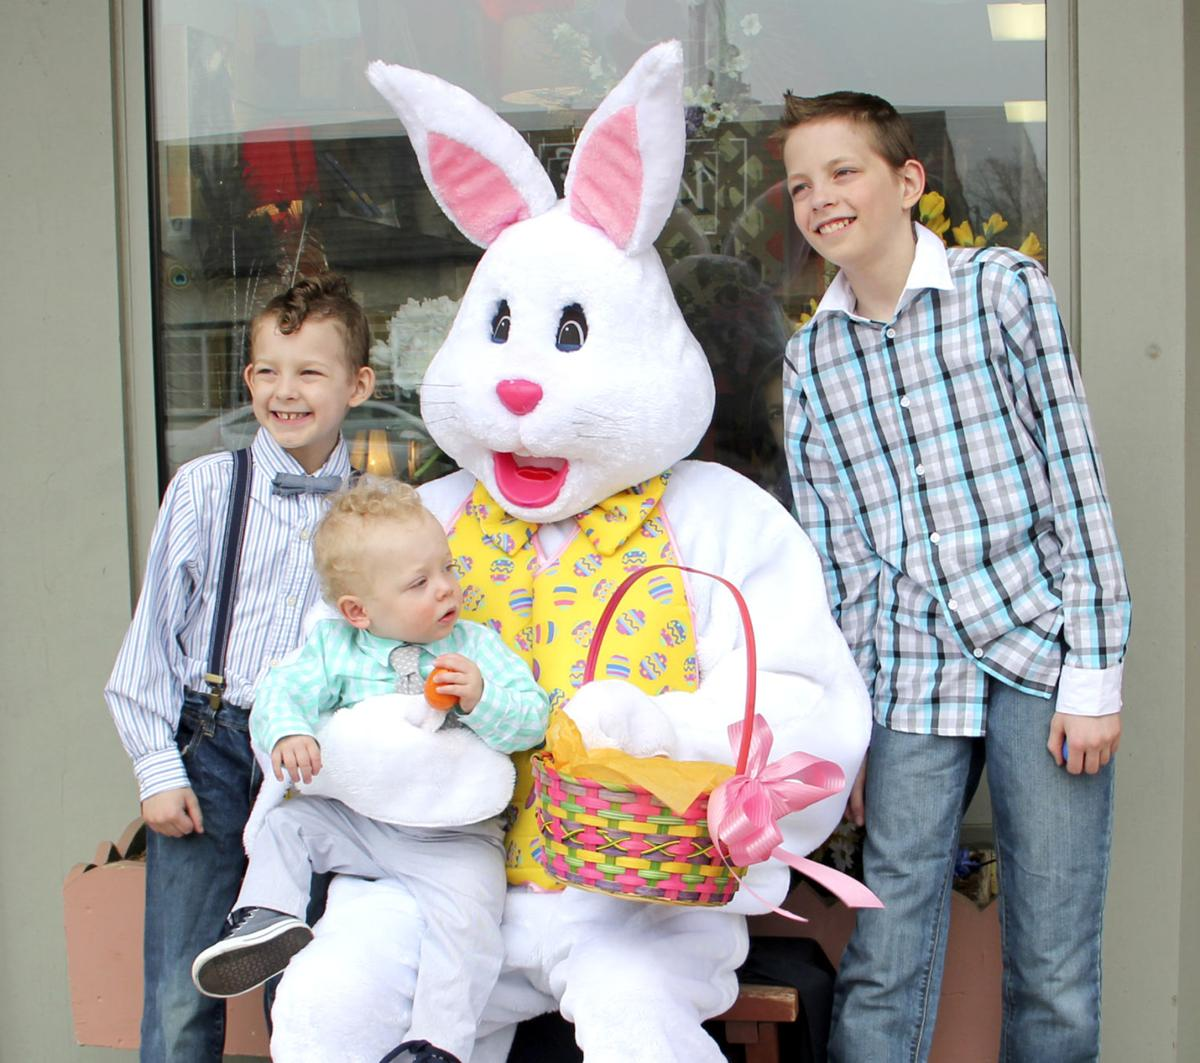 Business buzz easter bunny visits dandelion floral news the rittenour family had the chance to visit the easter bunny in front of dandelion floral and gifts pictured left to right jonas age 8 harrison age 1 negle Images